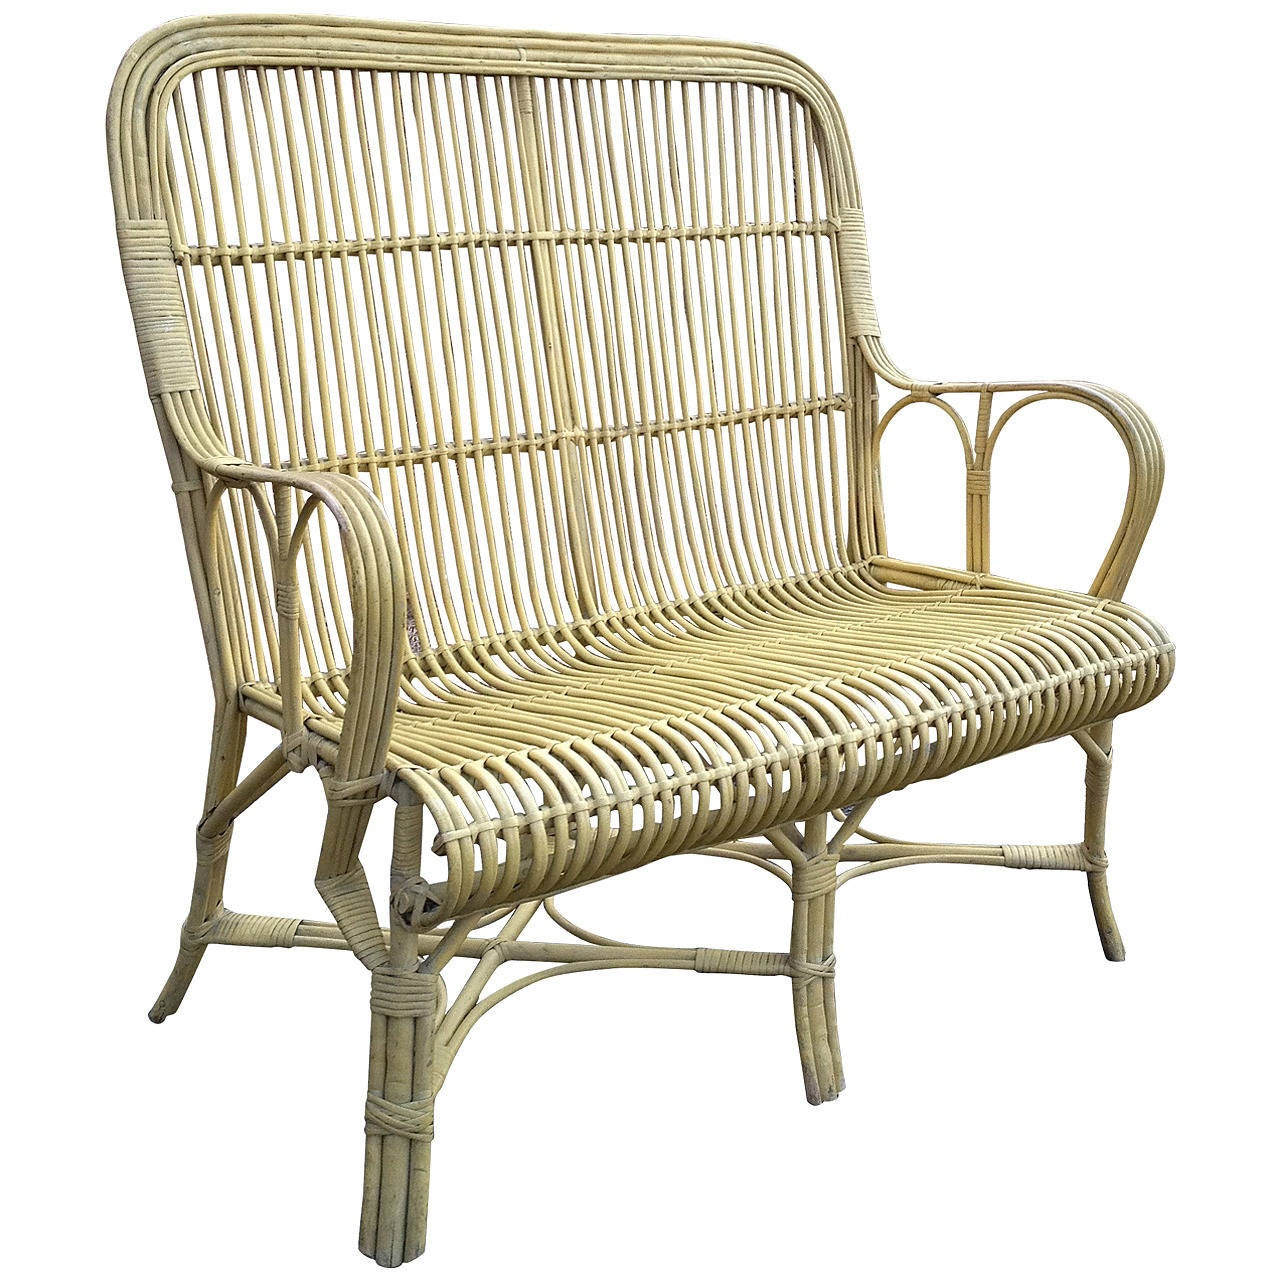 Rare Antique Wicker Wing Back Settee For Sale At 1stdibs